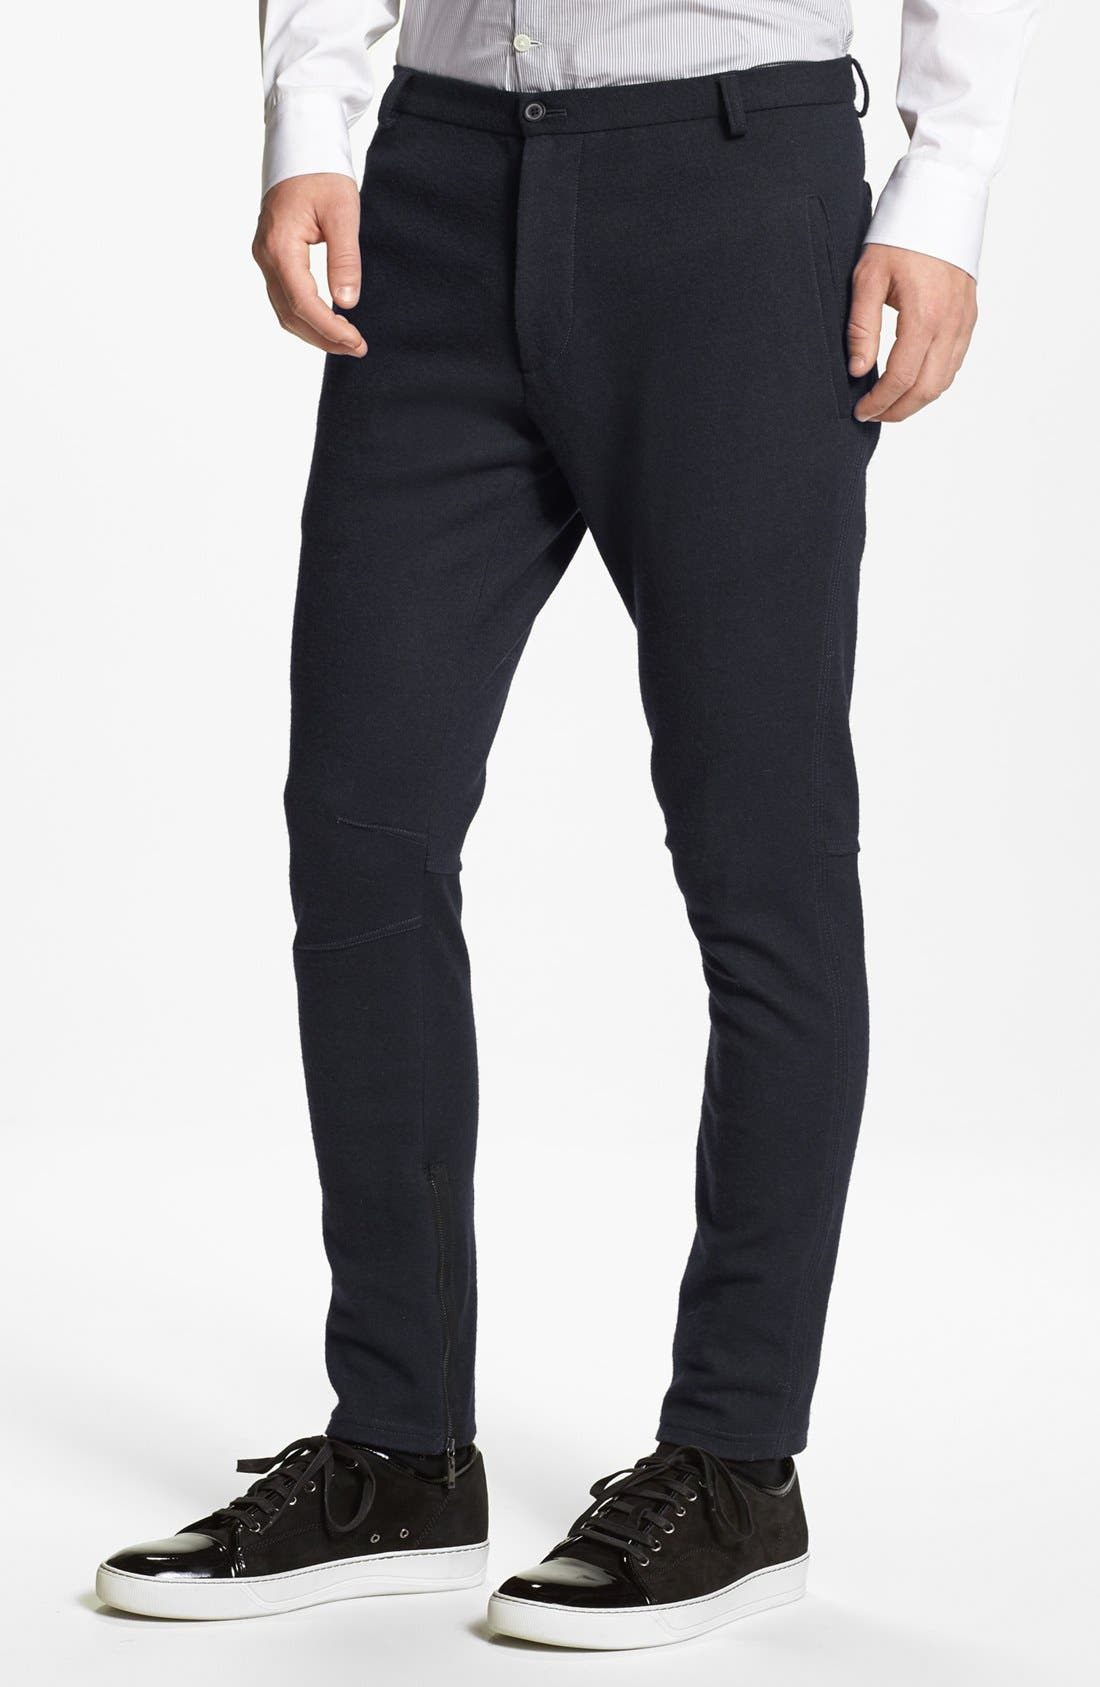 Main Image - Lanvin Slim Fit Stretch Pants